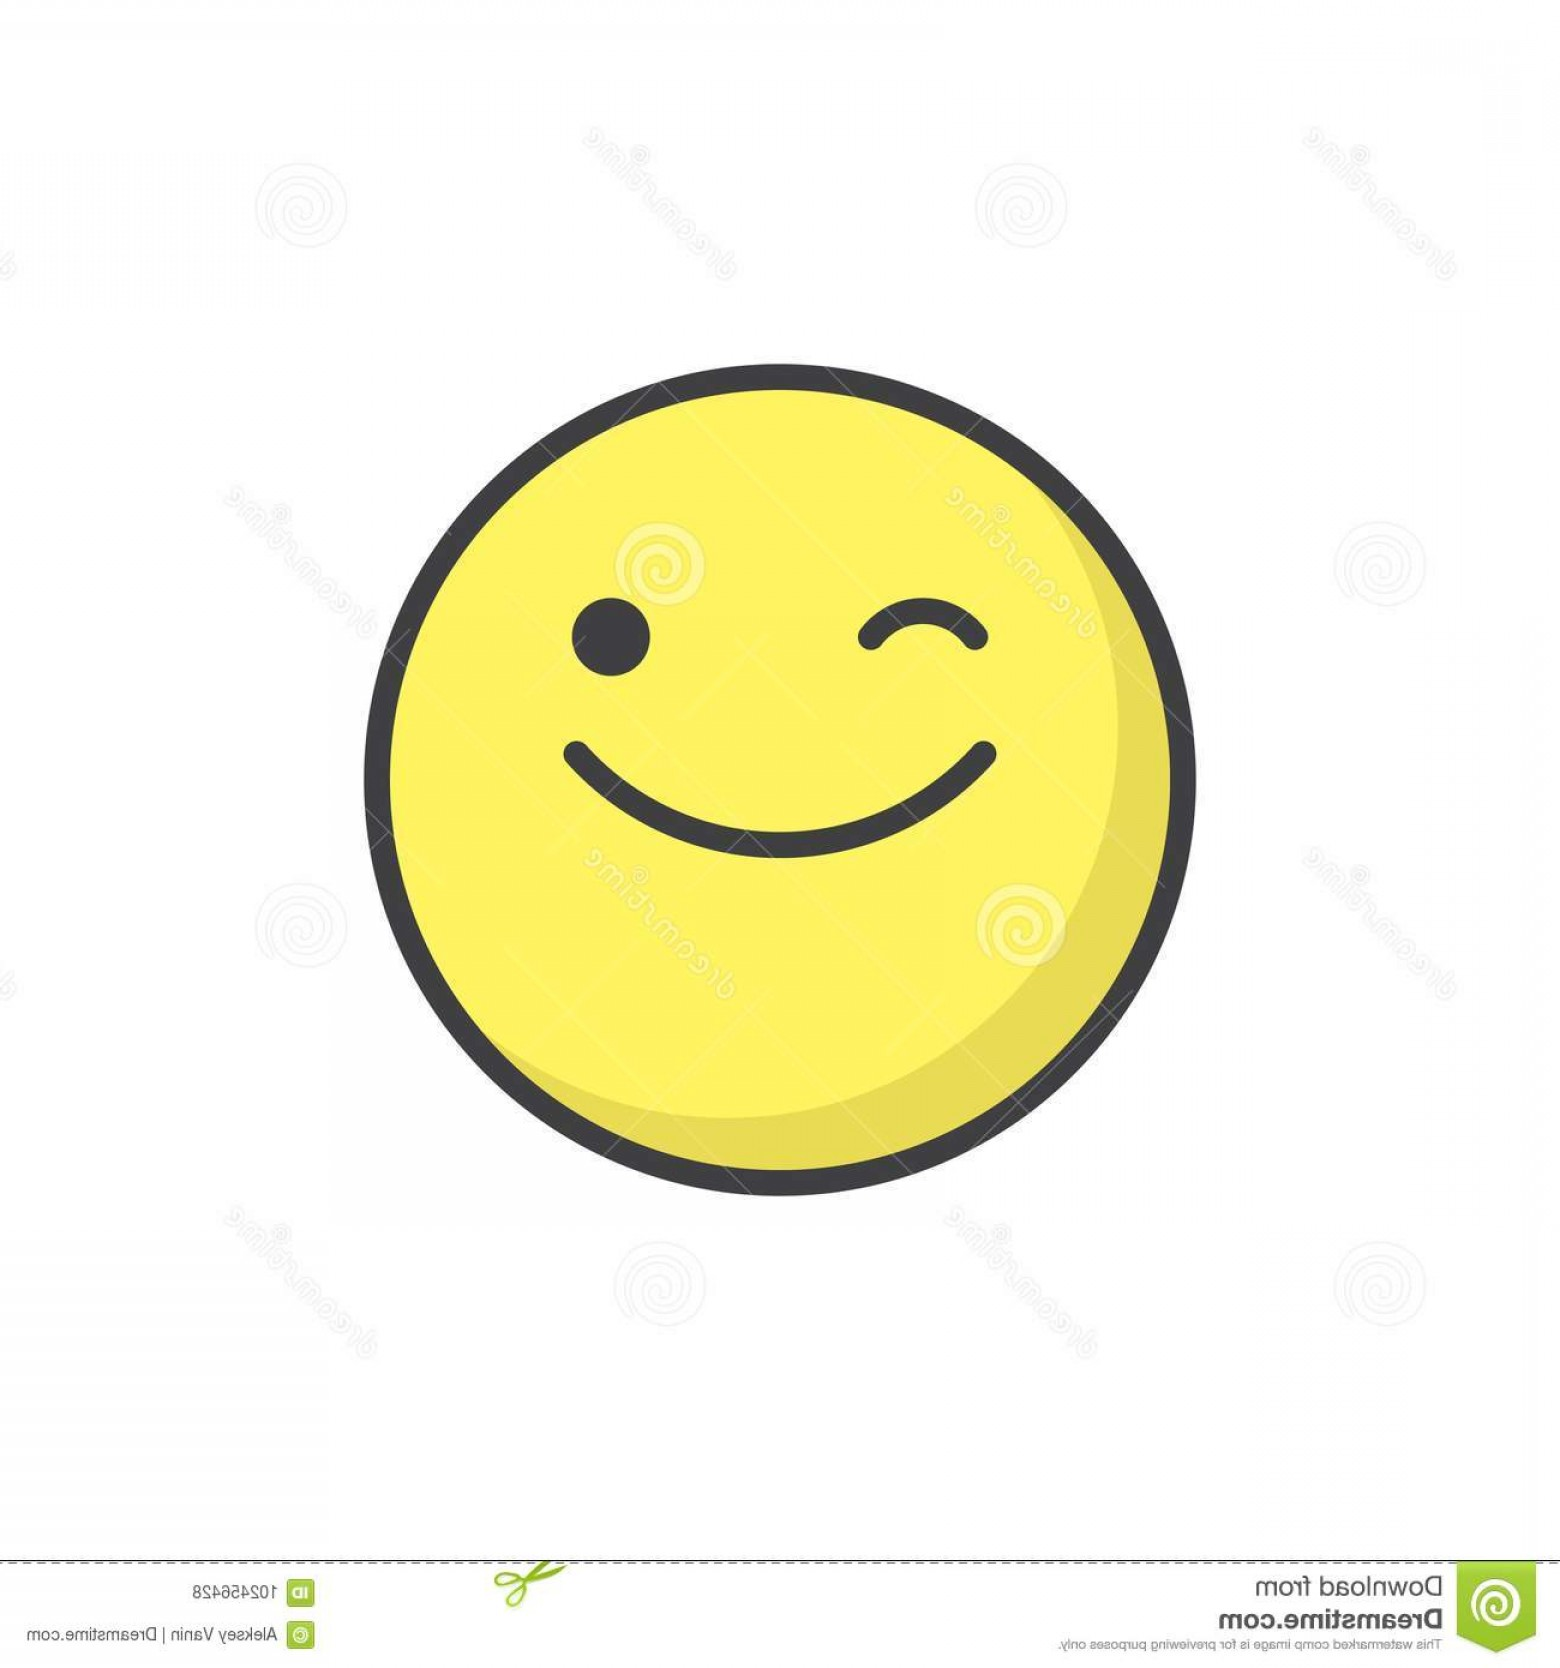 Smiley-Face Winking Vector: Winking Face Emoticon Filled Outline Icon Line Vector Sign Linear Colorful Pictogram Isolated White Emoji Smiley Symbol Logo Image